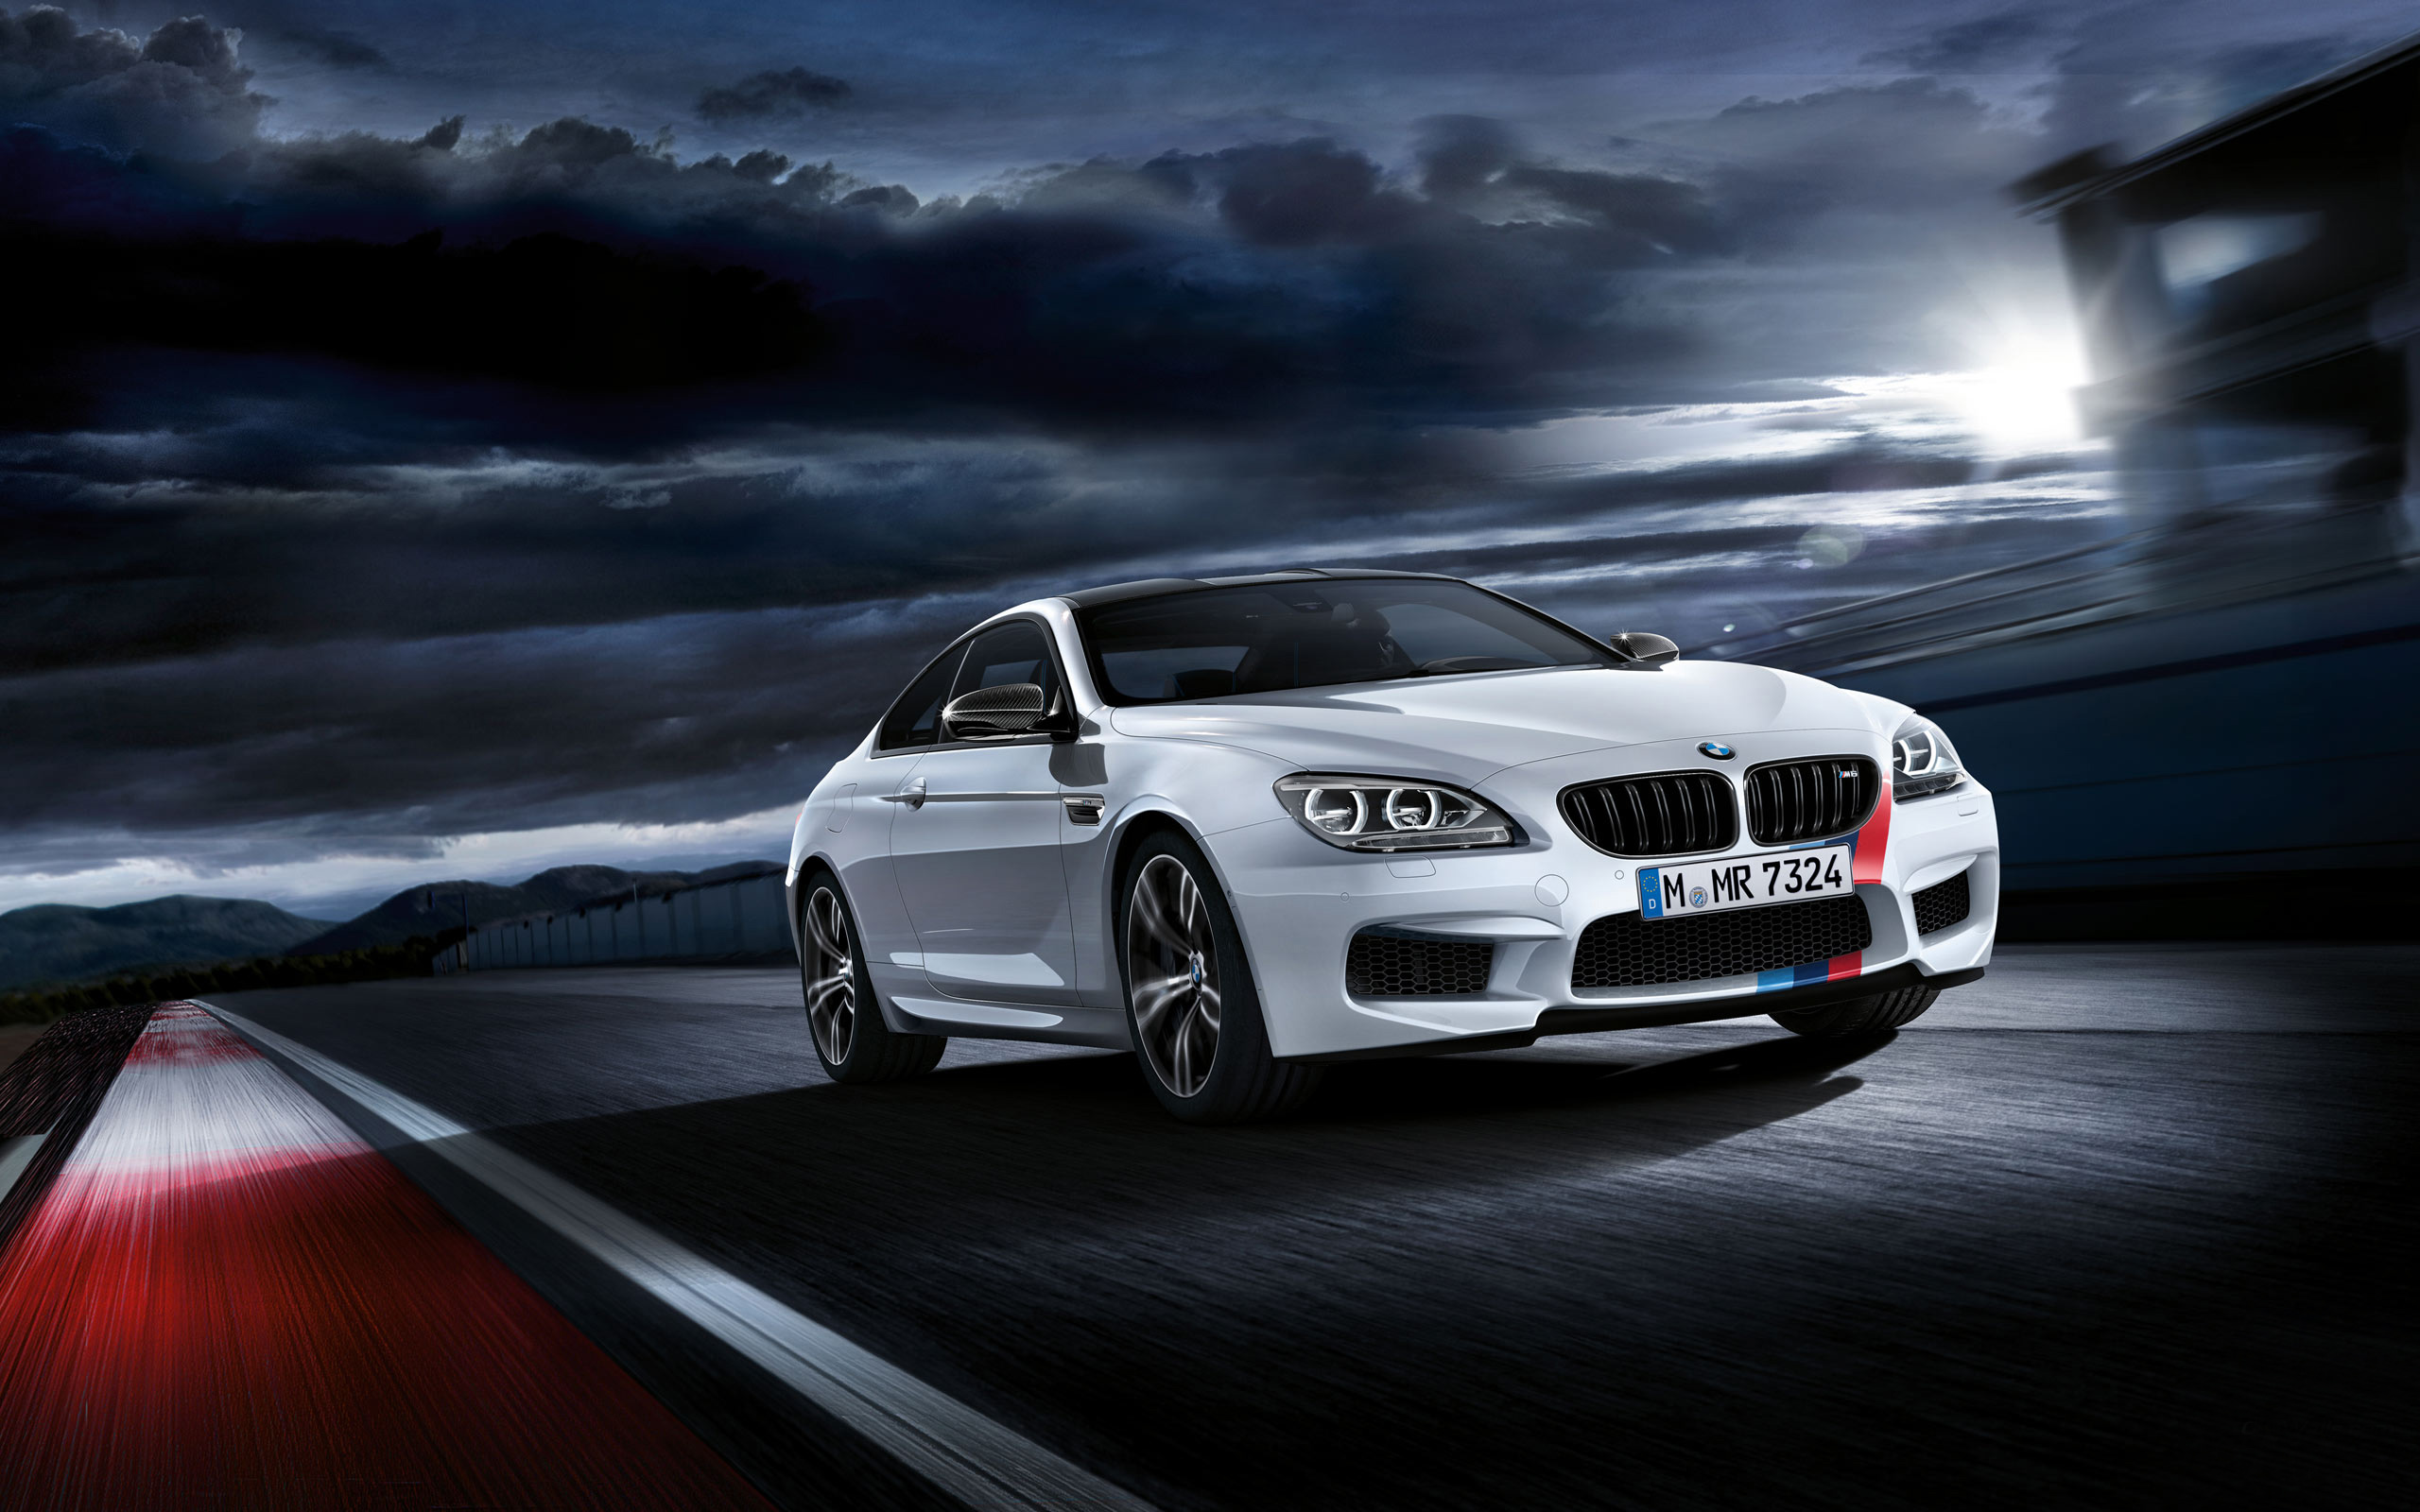 2013 Bmw M6 Wallpaper Hd Car Wallpapers